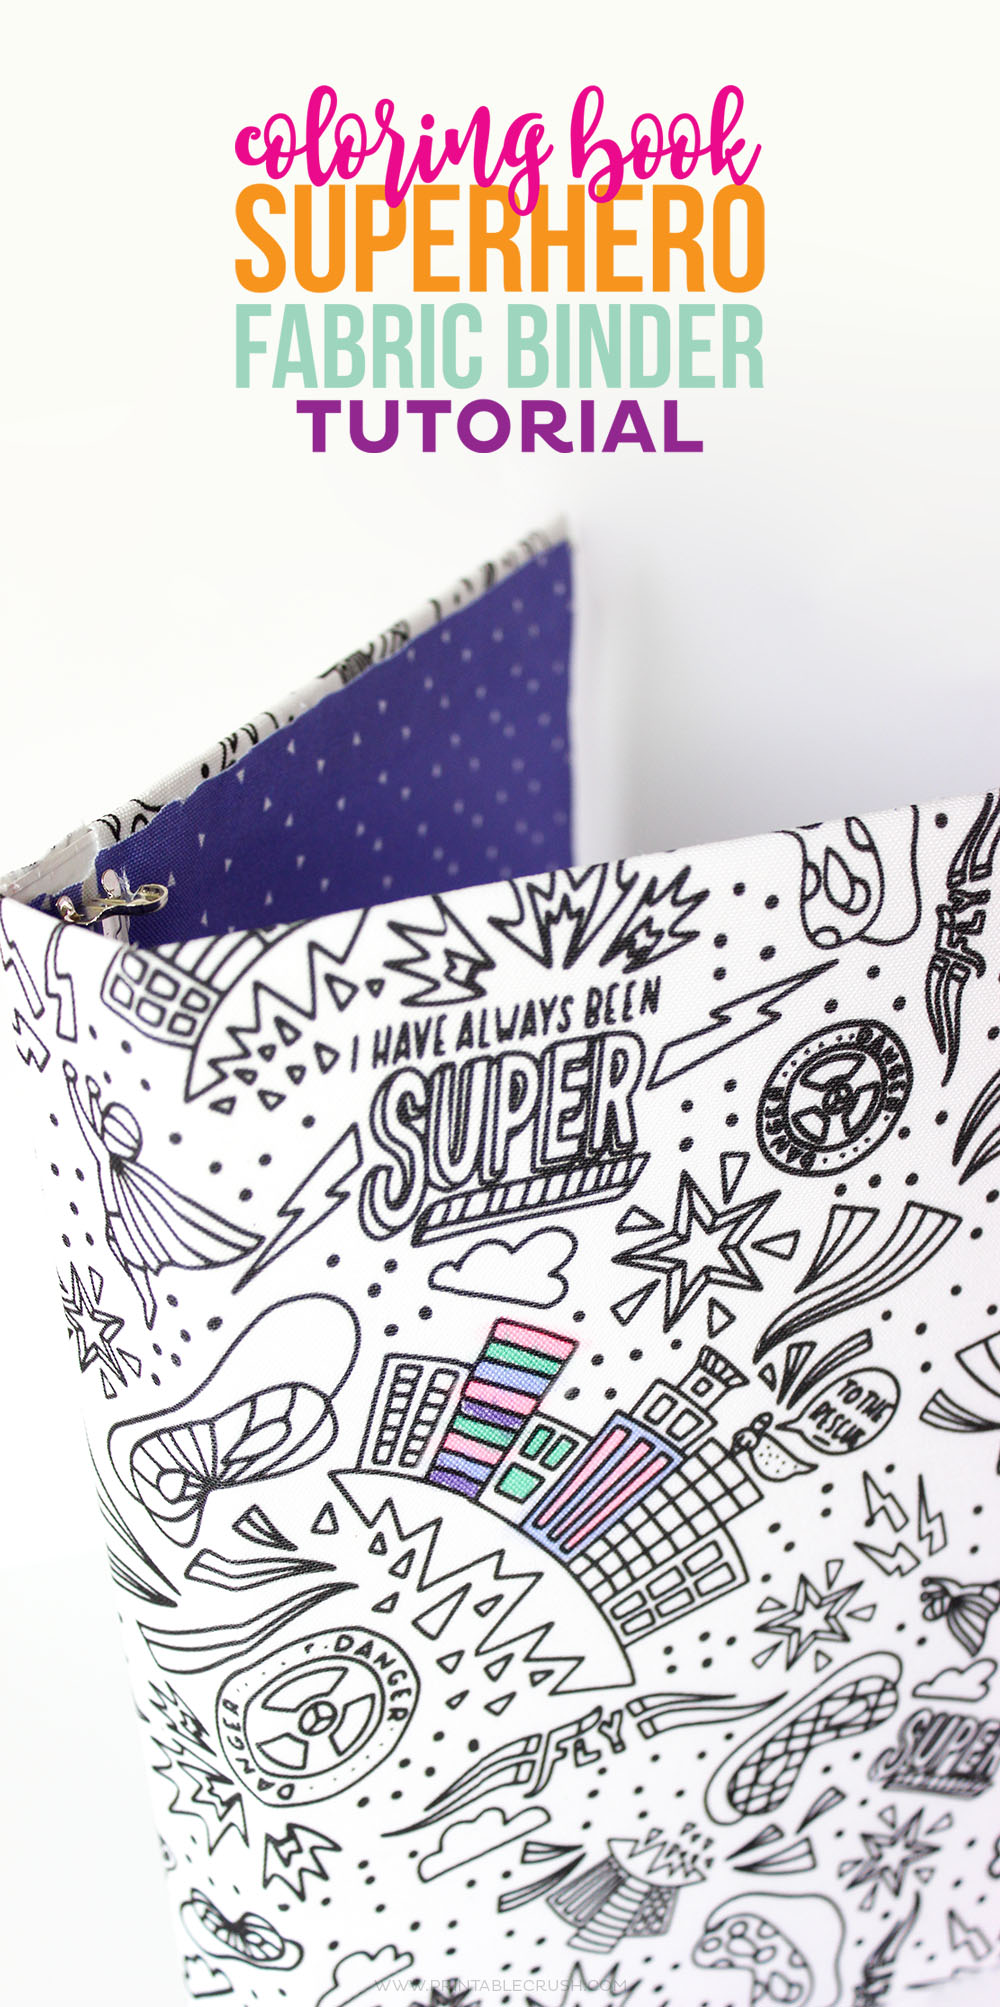 This Coloring Book Superhero Fabric Binder Tutorial Is A Great Back To School Project Your